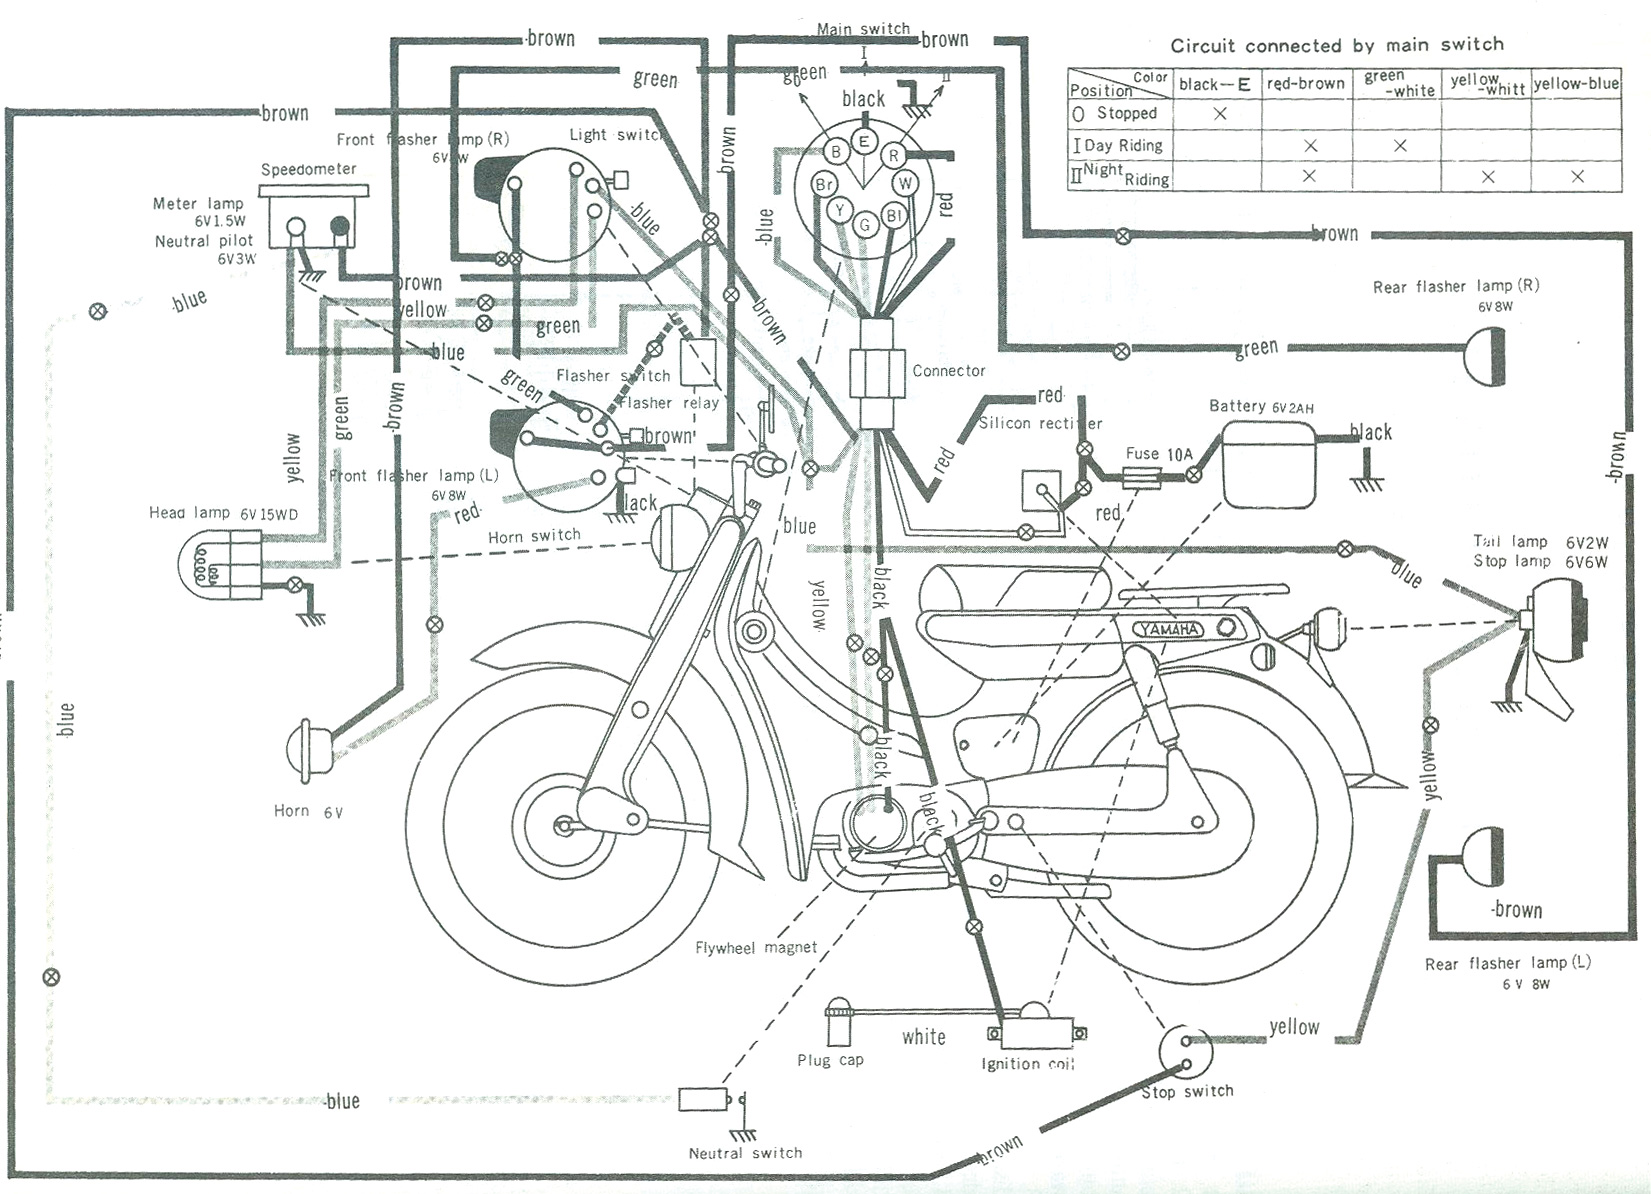 Yamaha Fzr 600 Wiring Diagram further Kawasaki Kh100 furthermore Yamaha R1 Water Pump Location also Motorcycle Engine Diagram besides 2003 Yamaha Zuma 50cc Wiring Diagram. on ttr 50 yamaha motorcycle engine diagrams